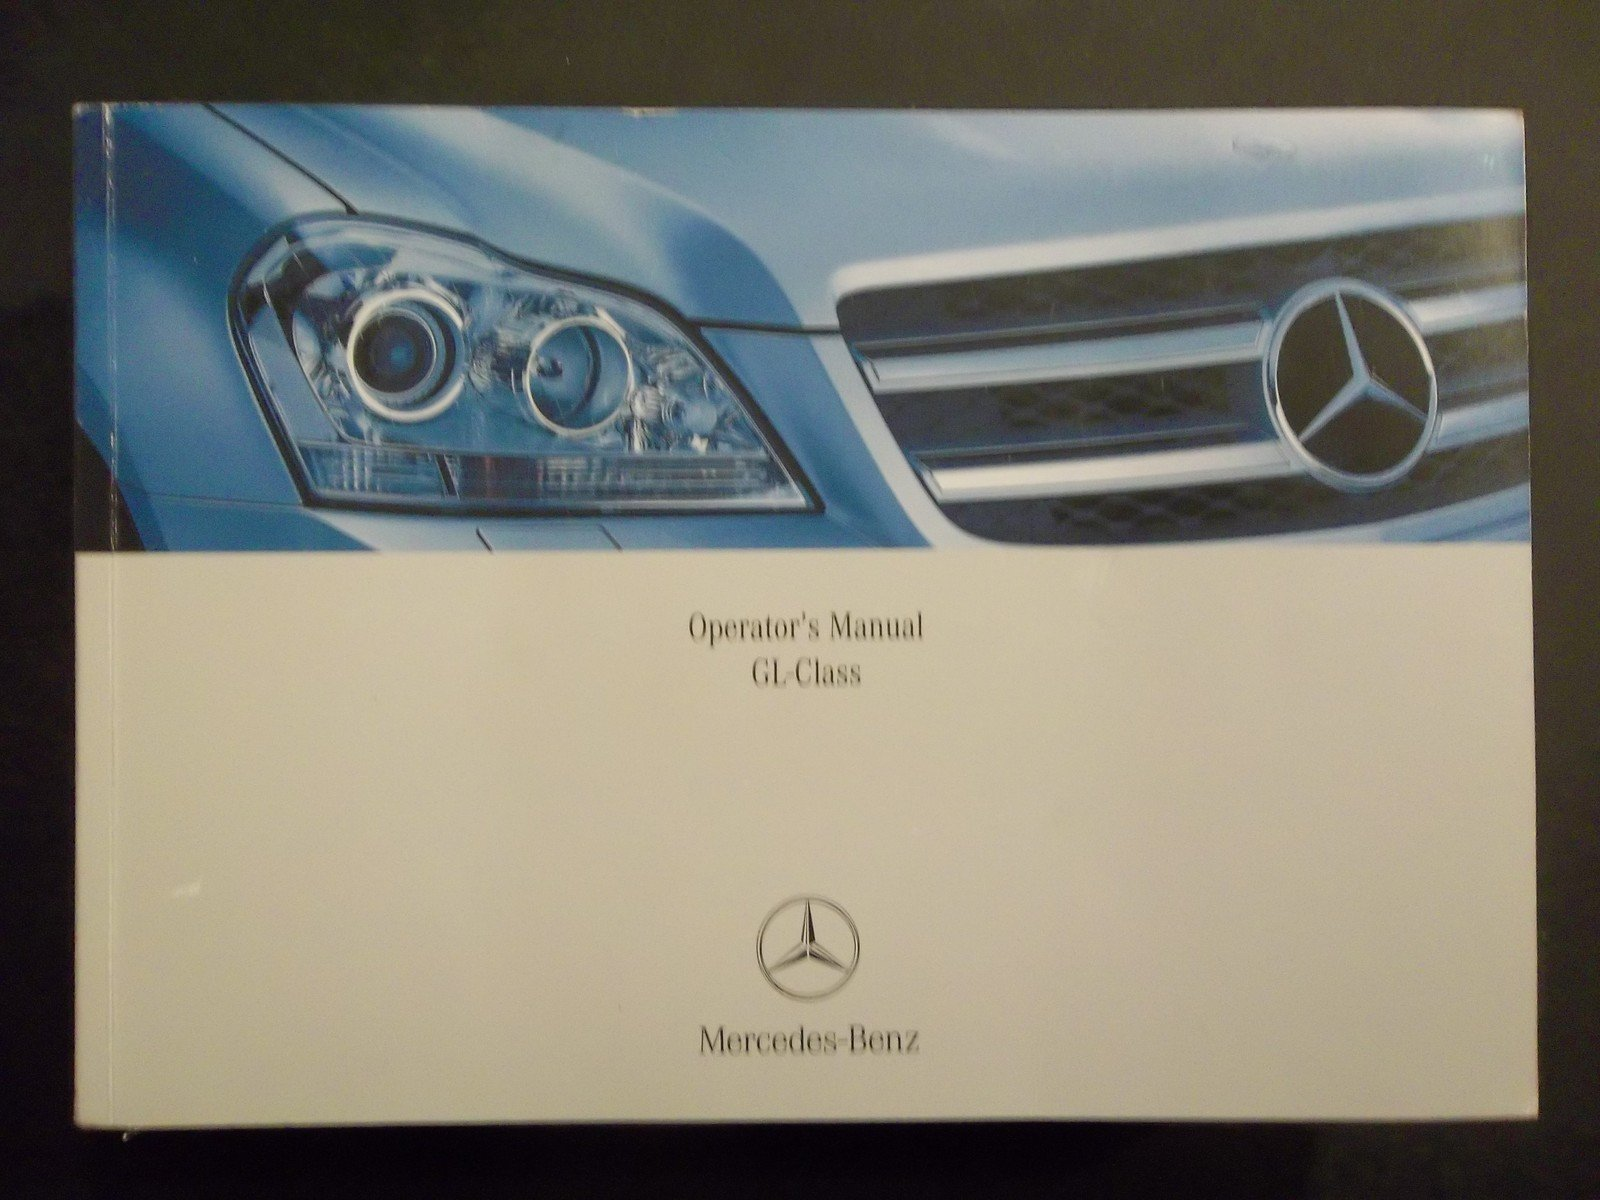 2007 Mercedes GL Class Owners Manual: Mercedes: 0682821520198: Amazon.com:  Books